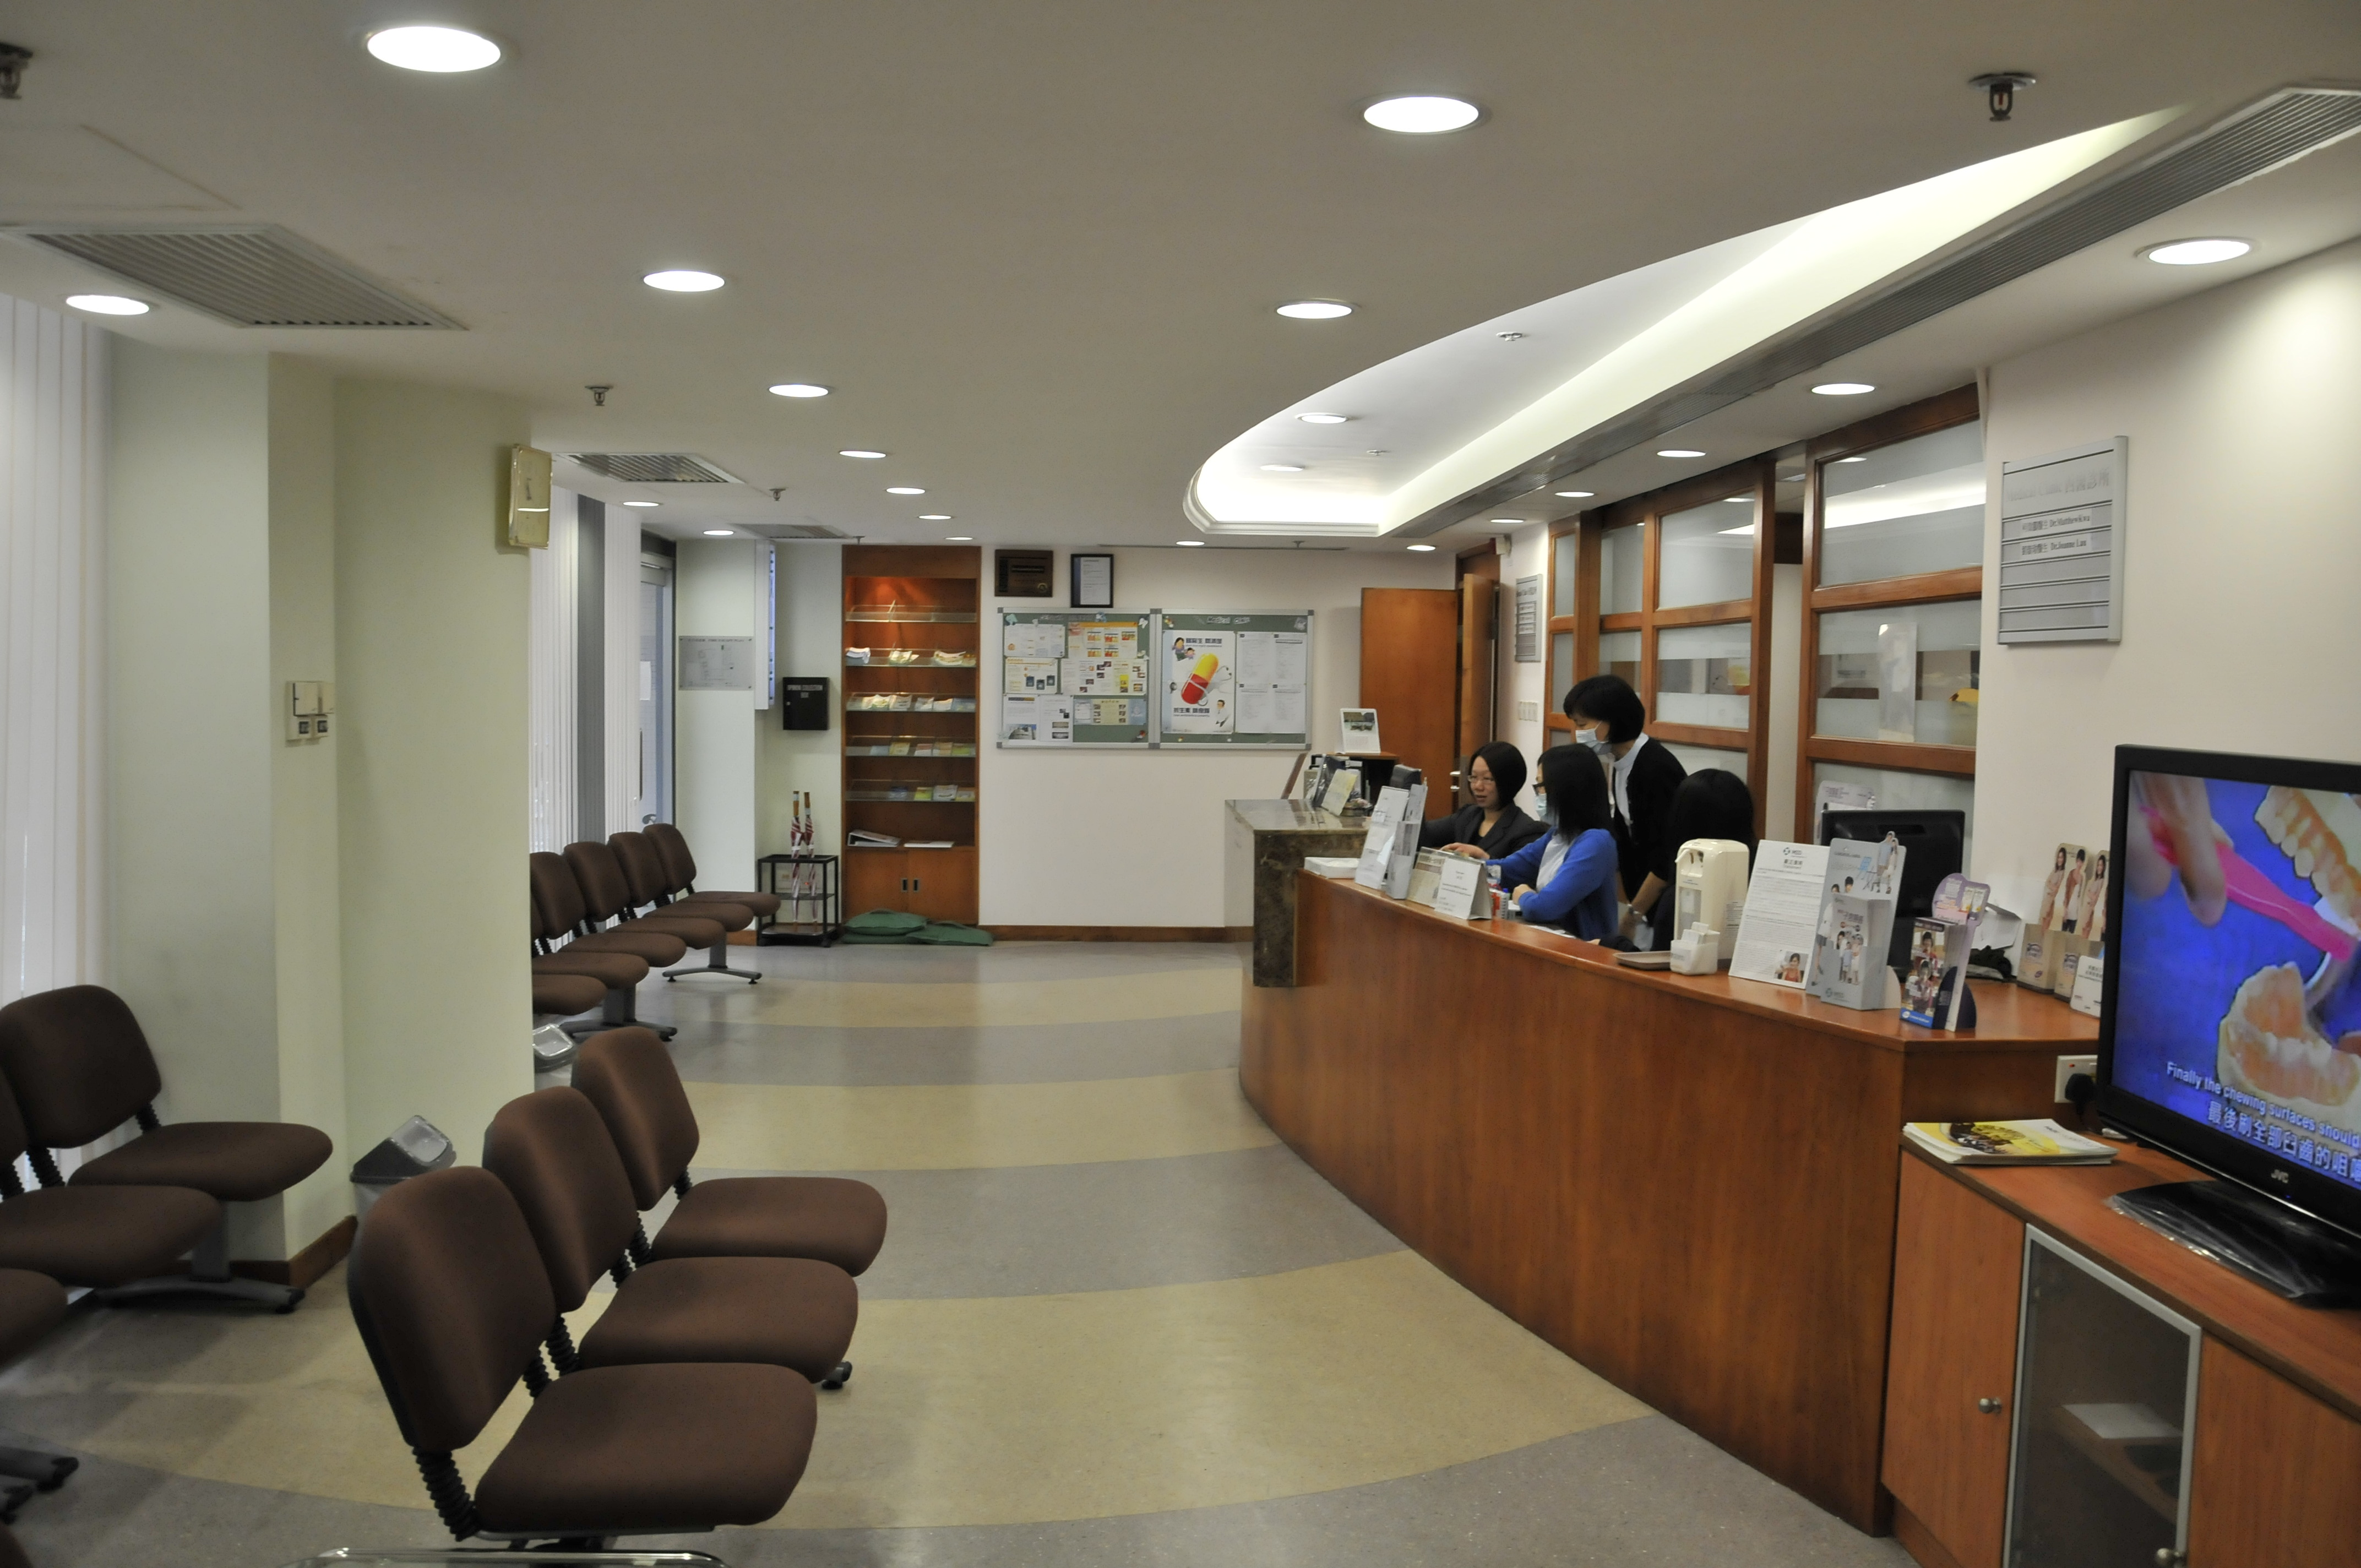 Find best gym spa salon and more in healthcenter for Office design guidelines